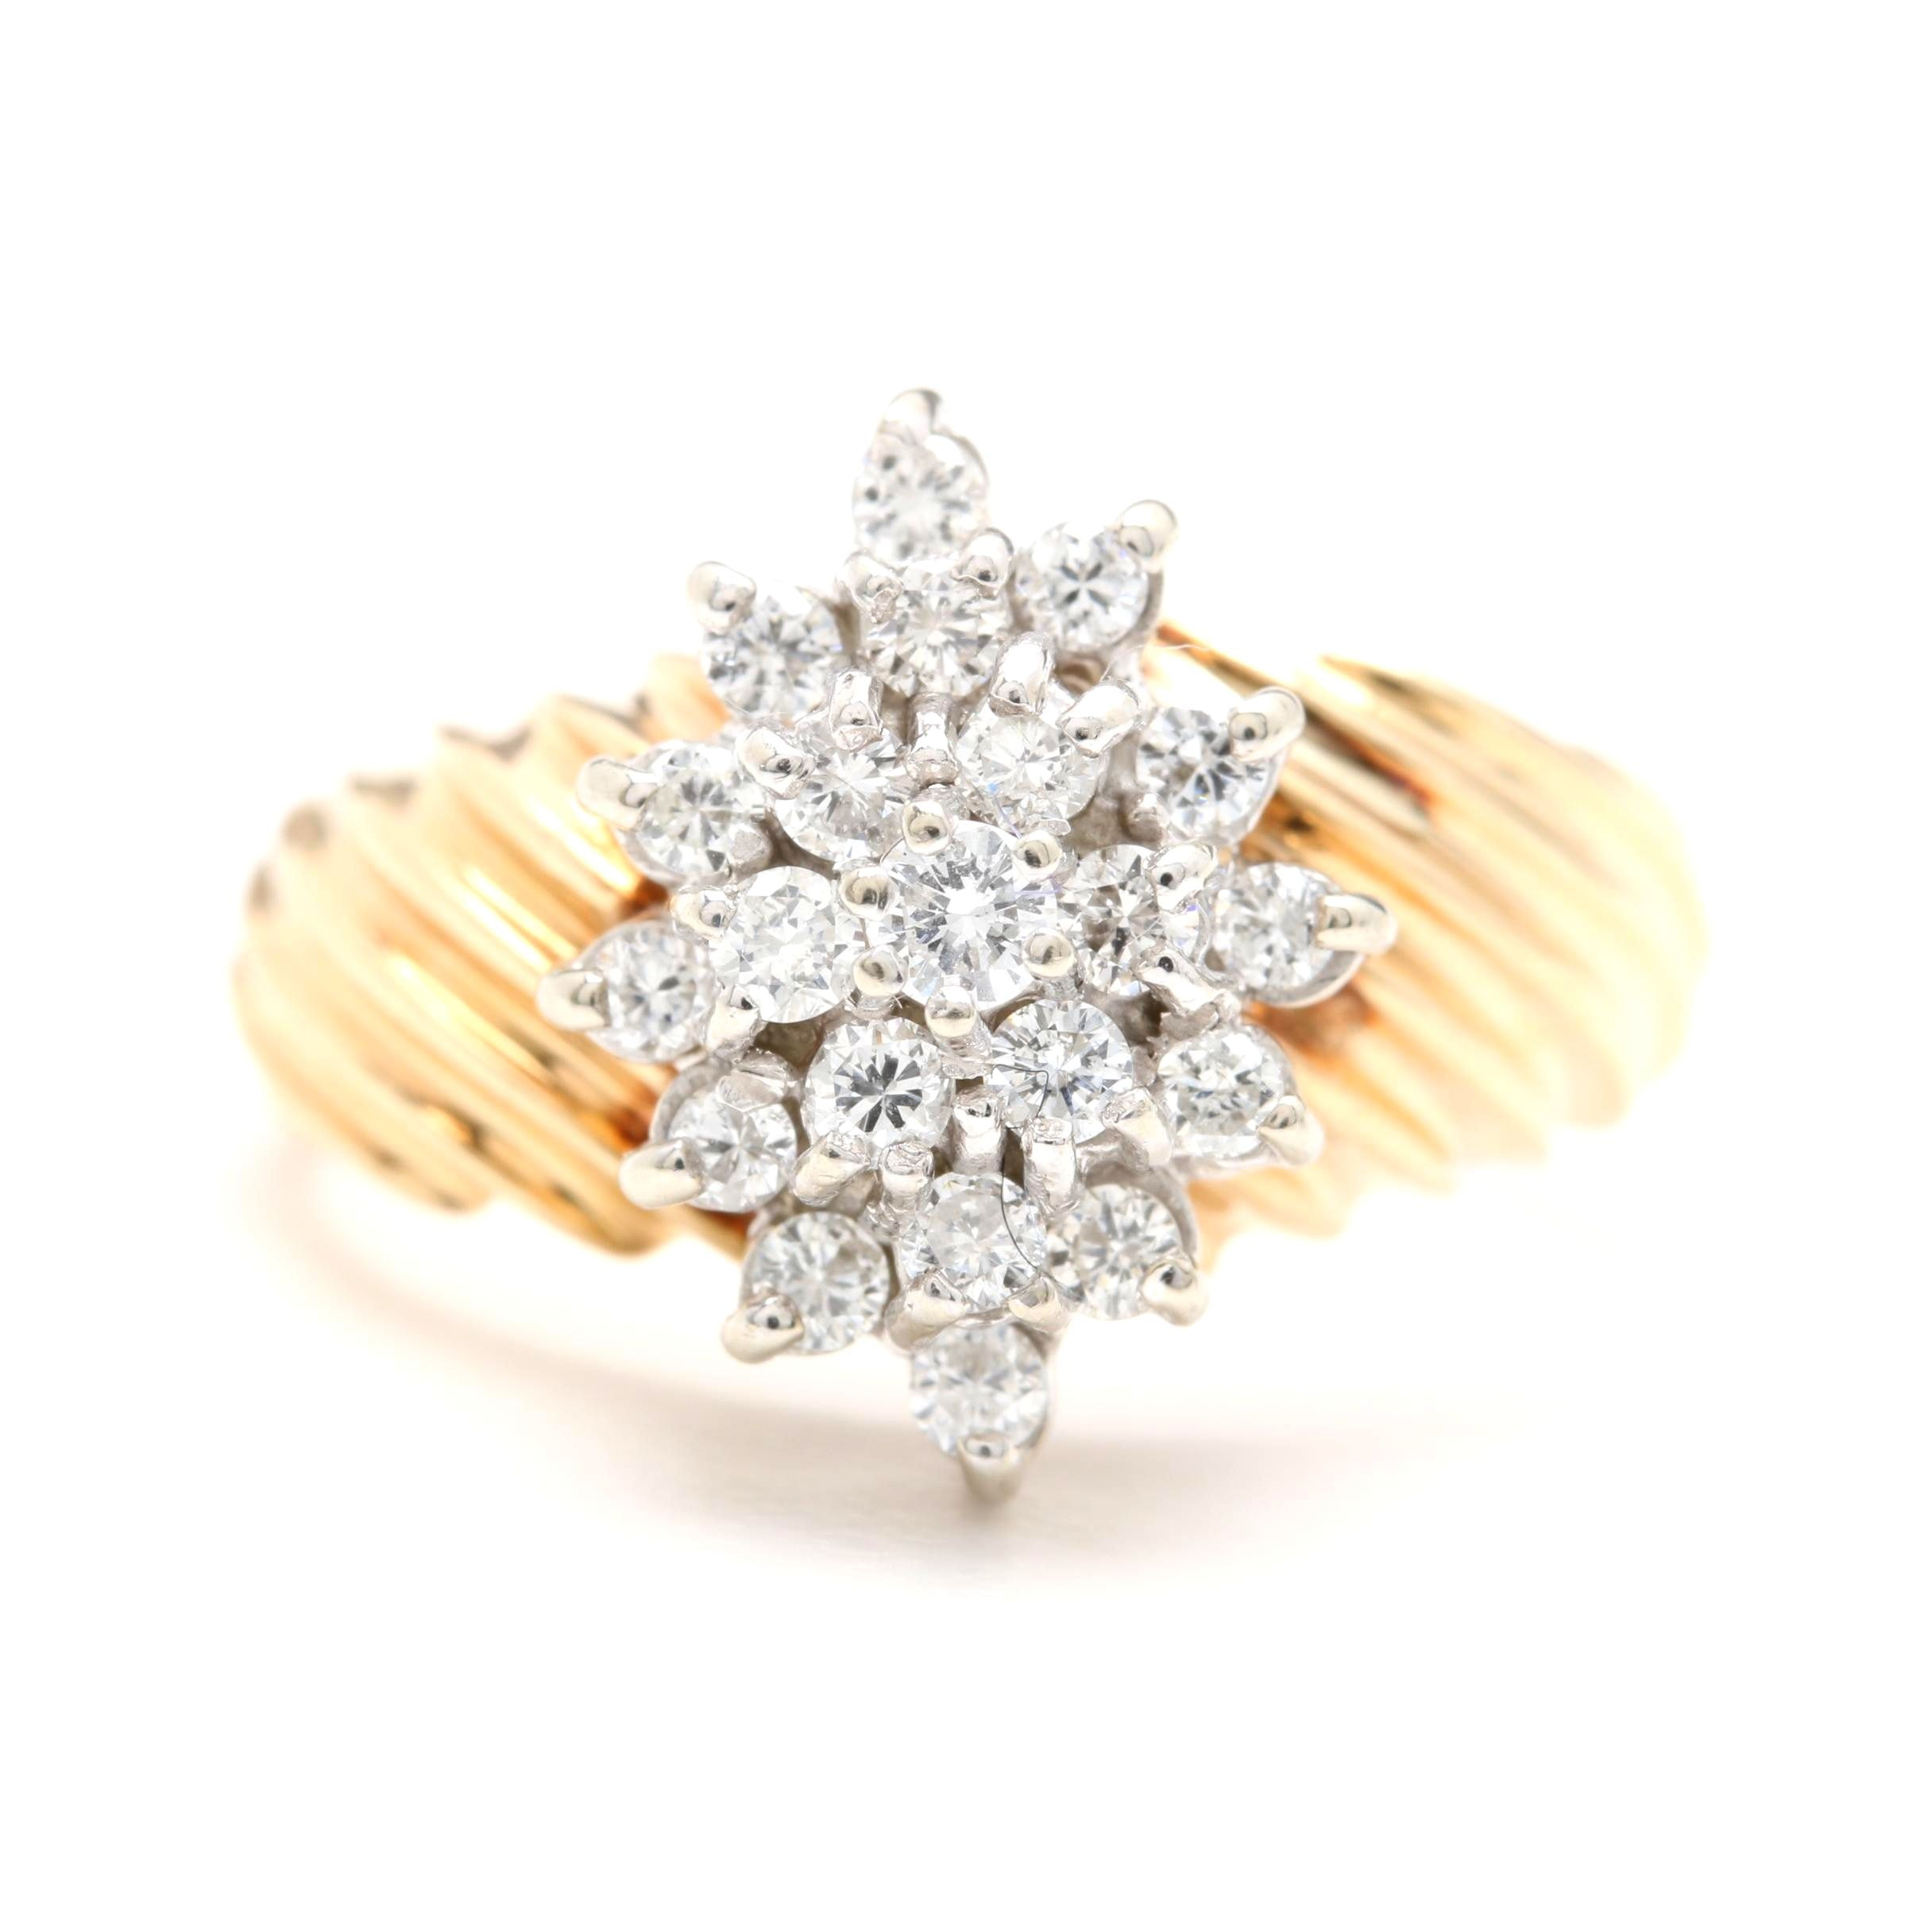 14K Yellow Gold Diamond Cluster Ring with 14K White Gold Accents